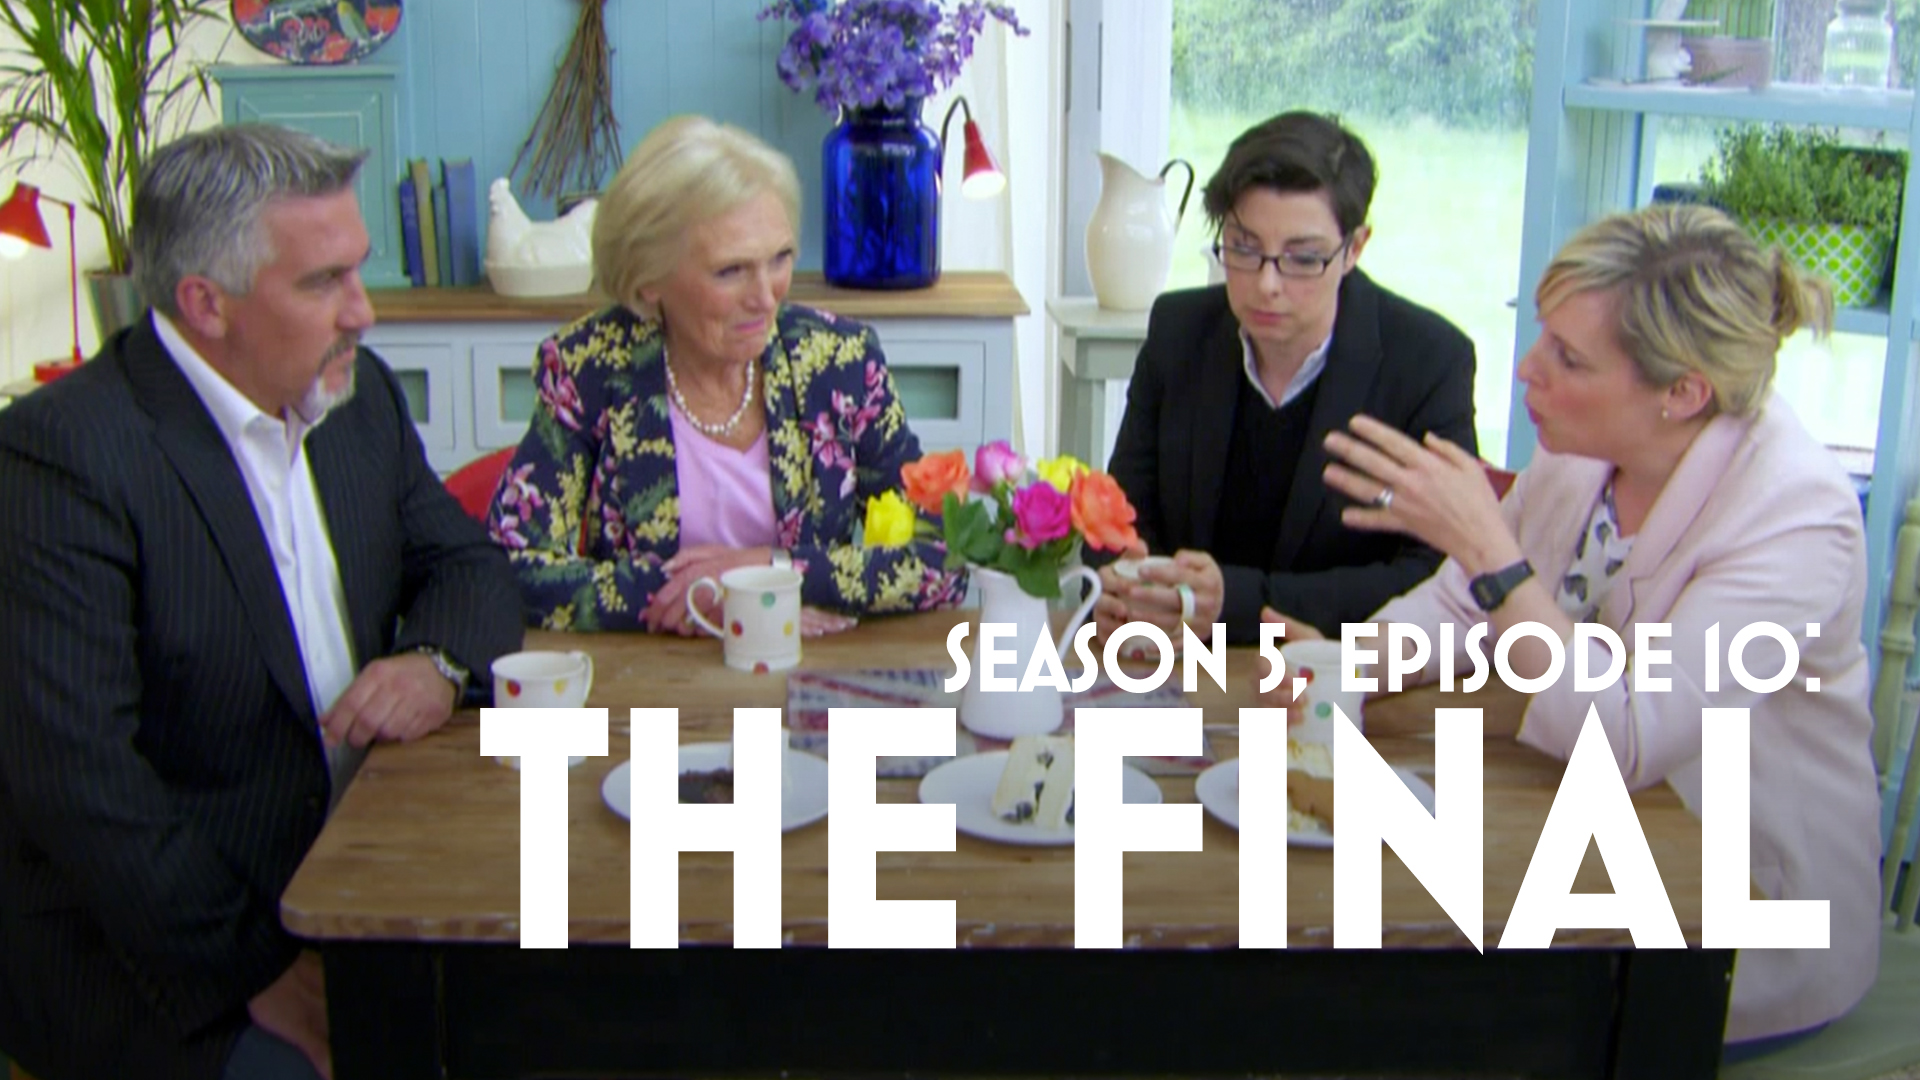 Episode 10: The Final